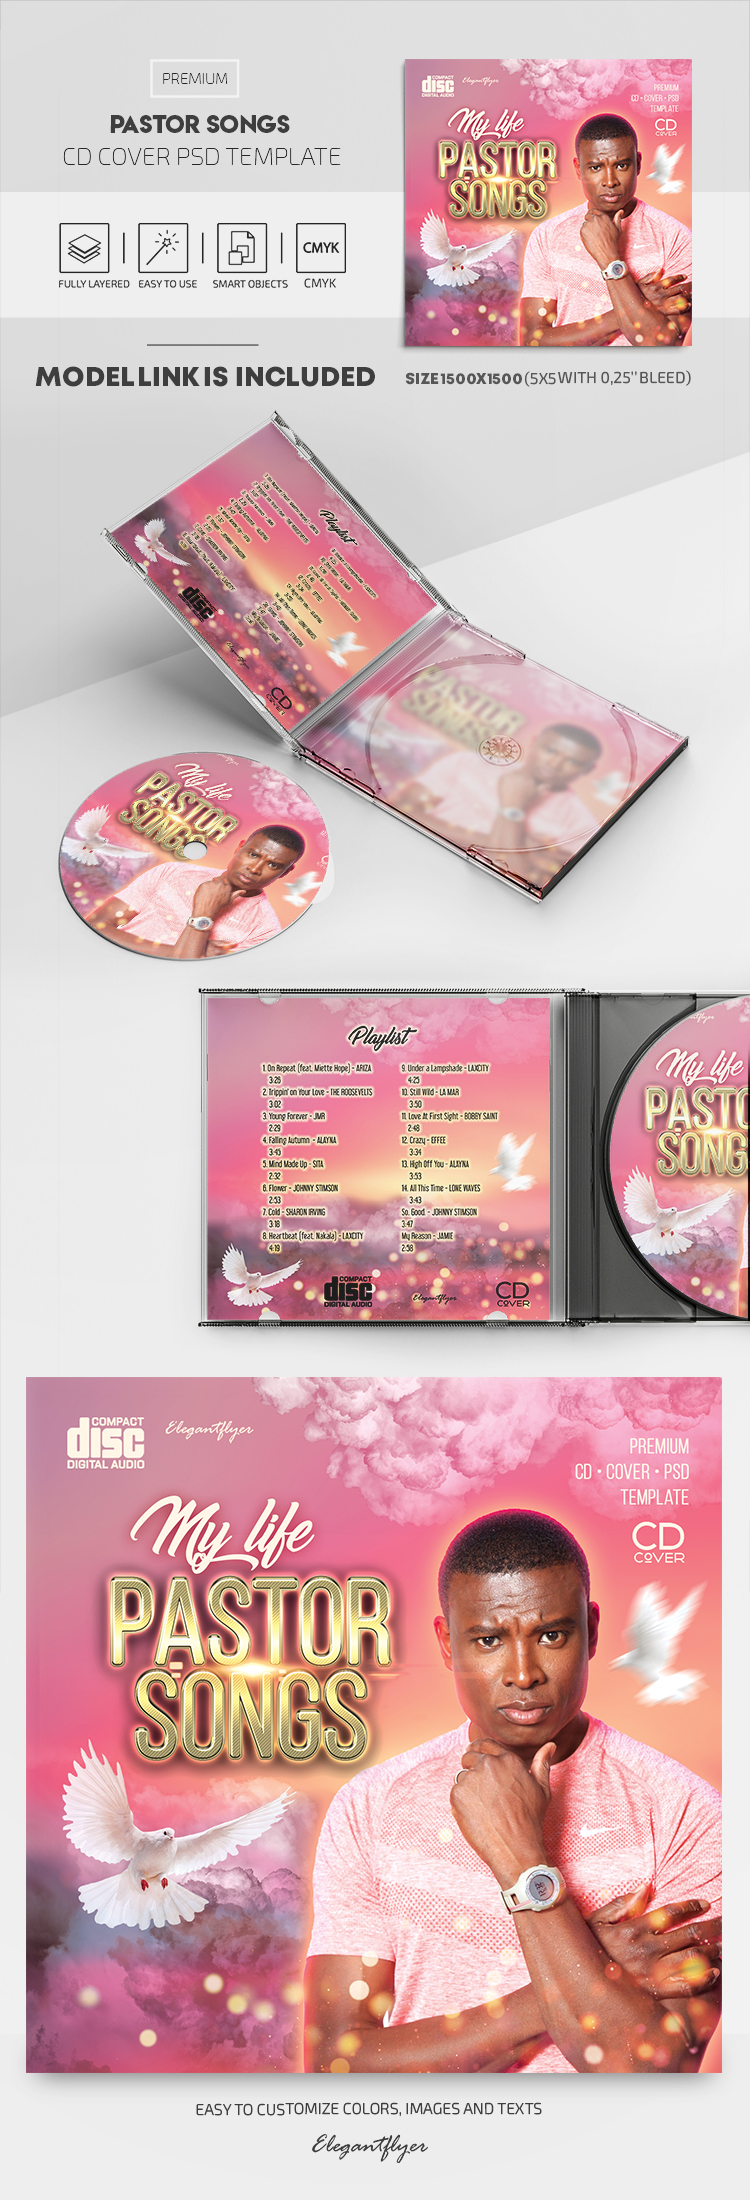 Pastor Songs – Premium CD Cover PSD Template